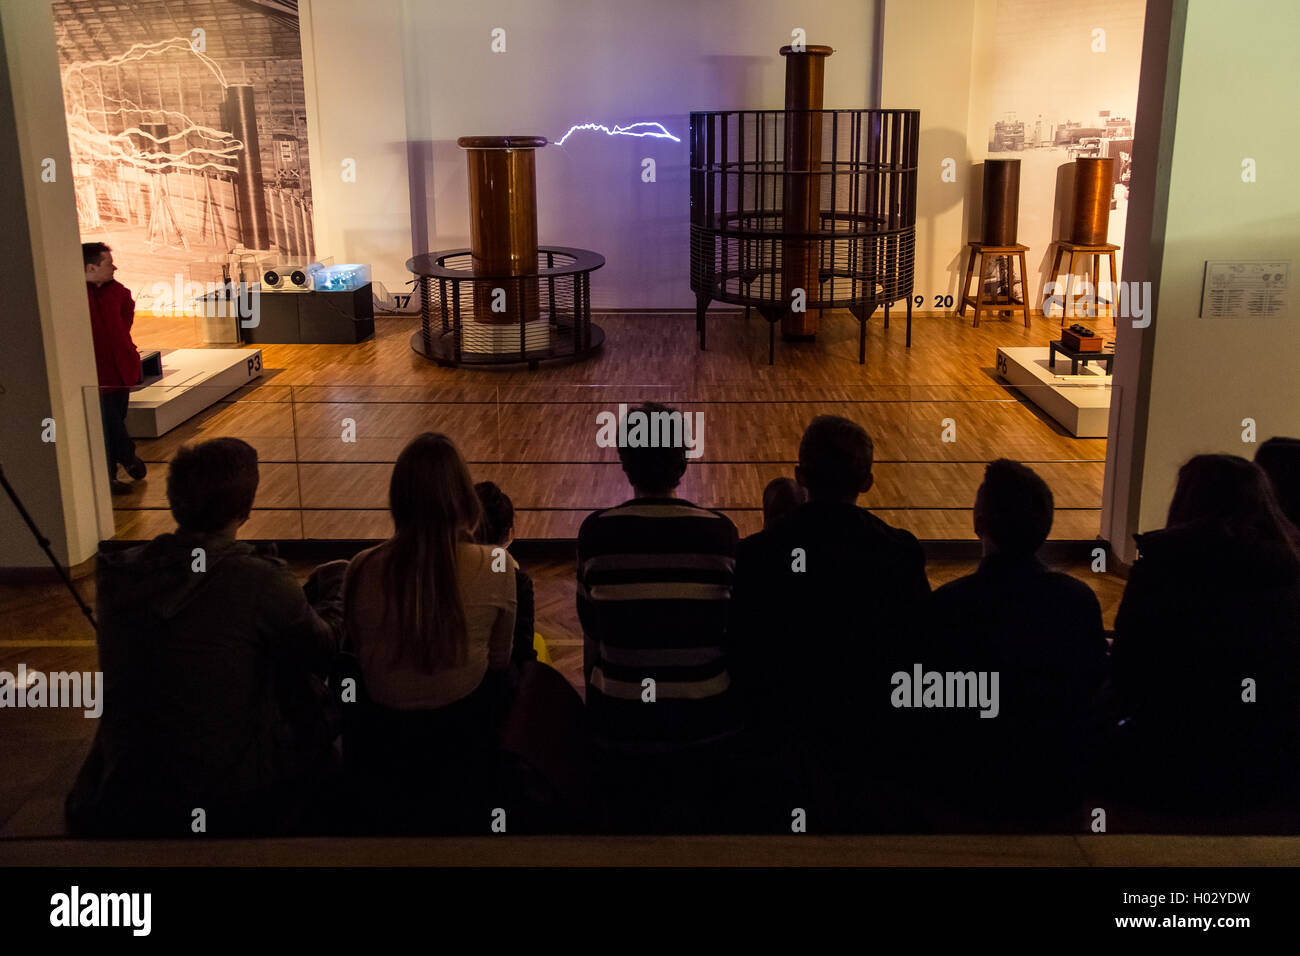 ZAGREB, CROATIA - 17 MARCH 2015: Museum staff showing an exibition to visitors in the Tesla part of the museum in - Stock Image